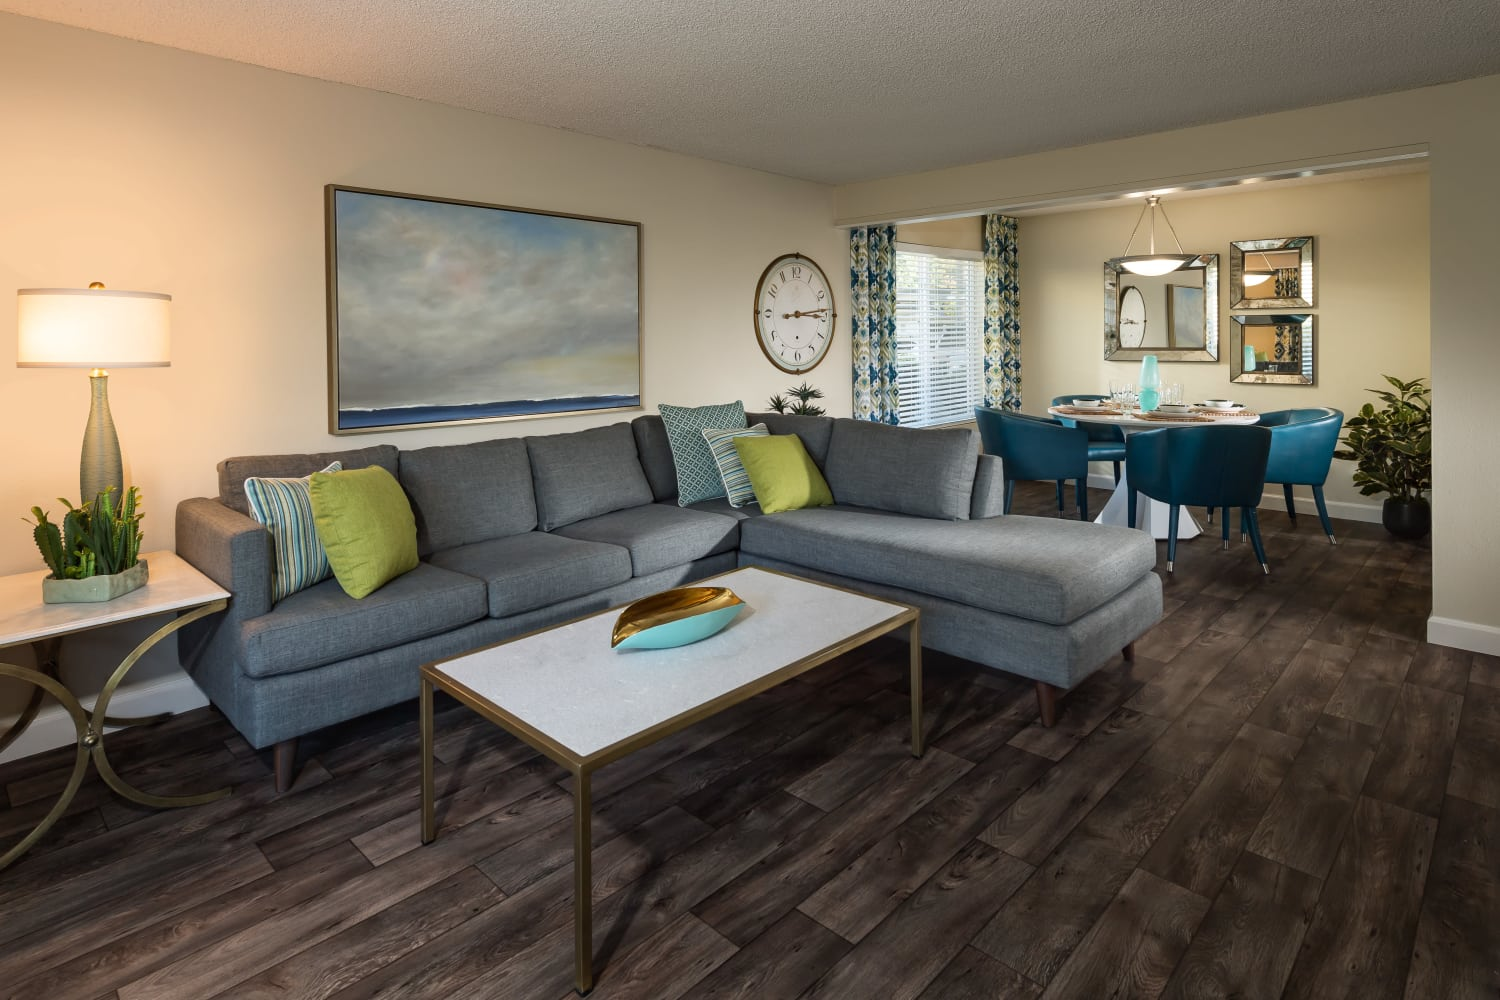 Wonderful floor plans for rent at Edgewood Park Apartments in Bellevue, Washington